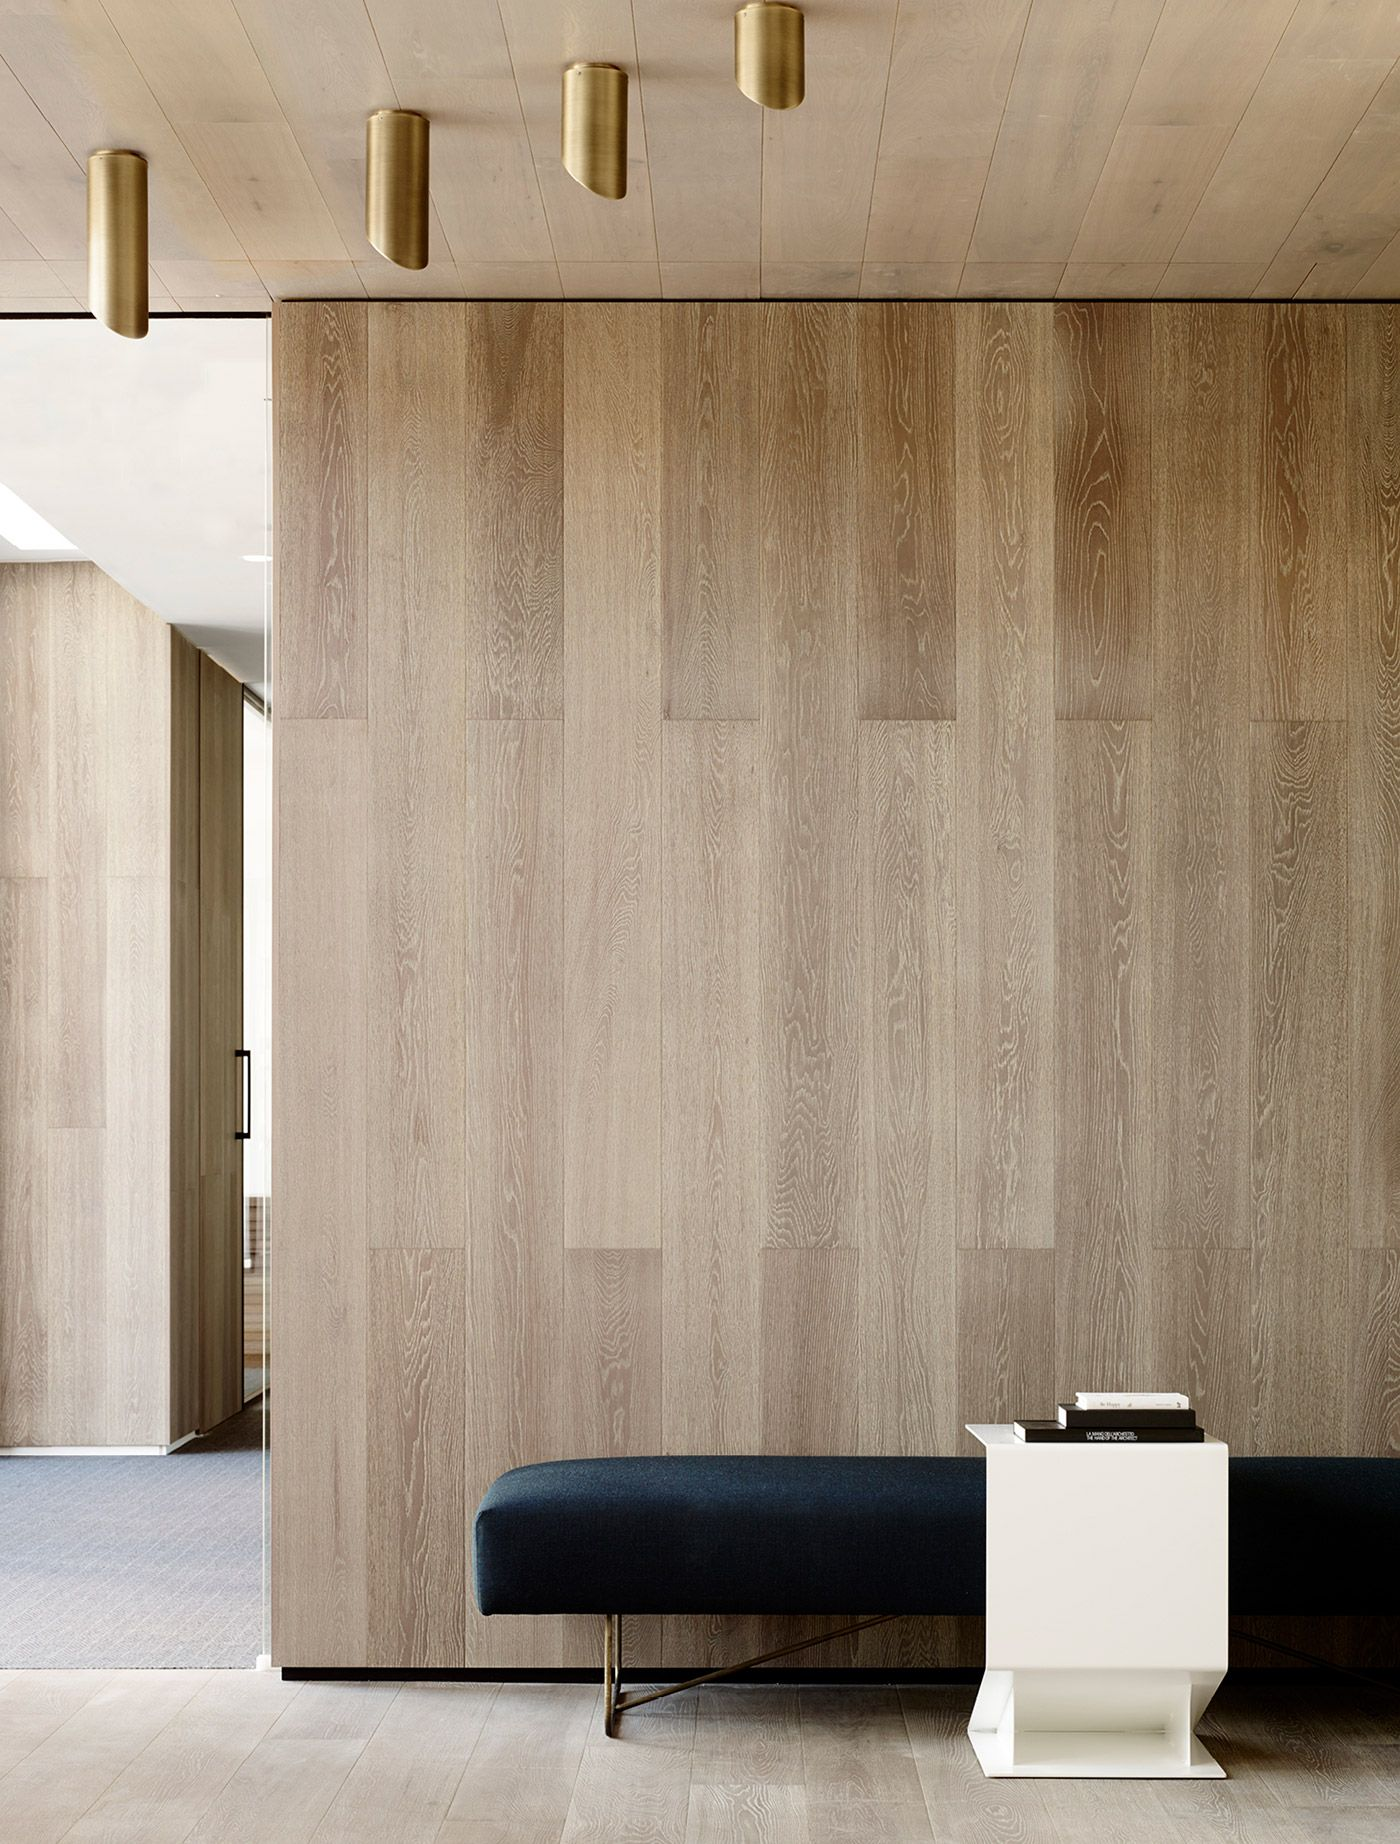 The interior philosophy adopts the comfort and feeling of - Residential interior wall panel systems ...